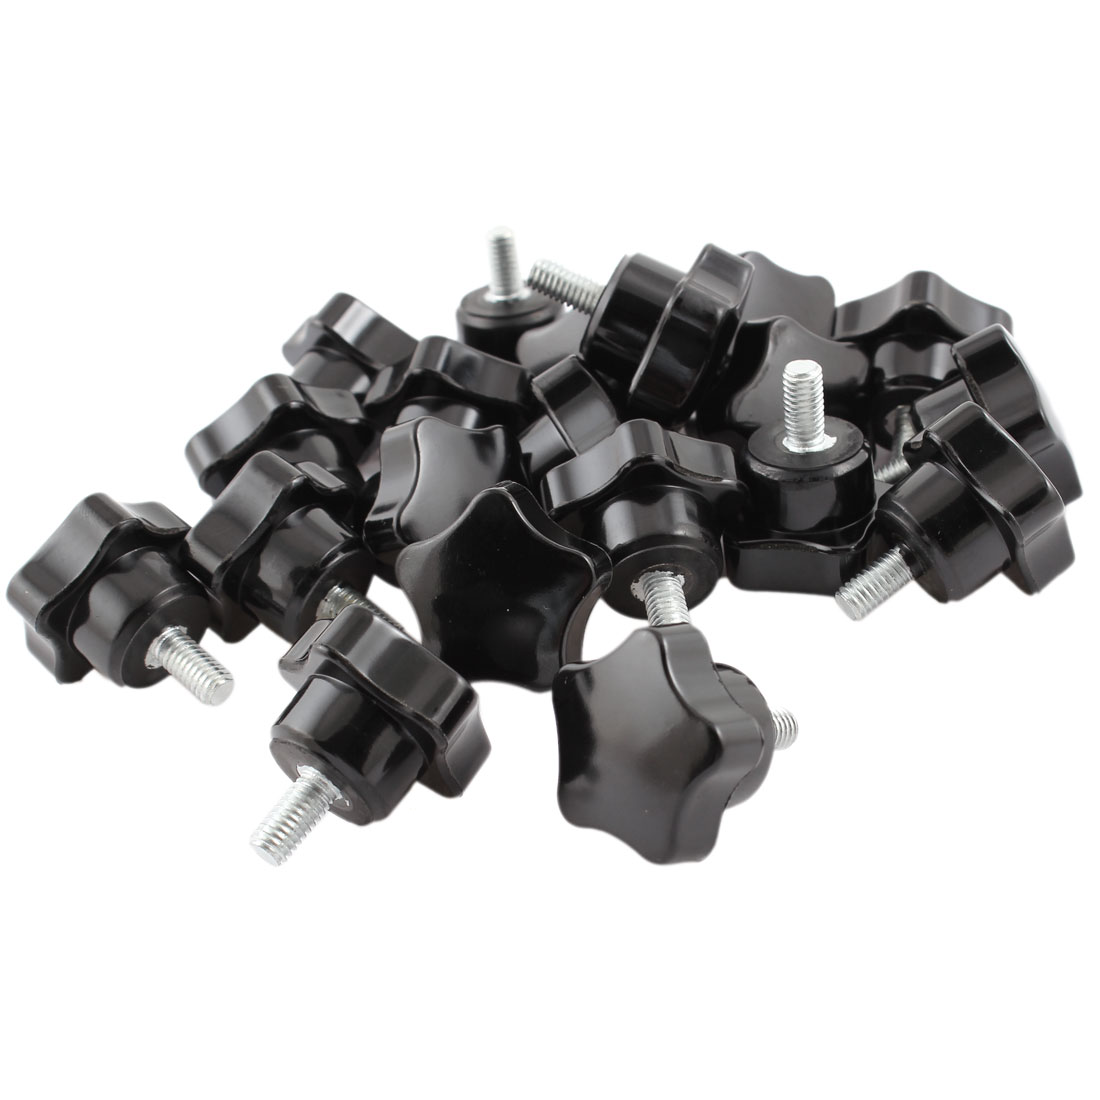 20 Pcs Black Plastic M6 x 10mm Male Threaded Knurled Grip Star Knob